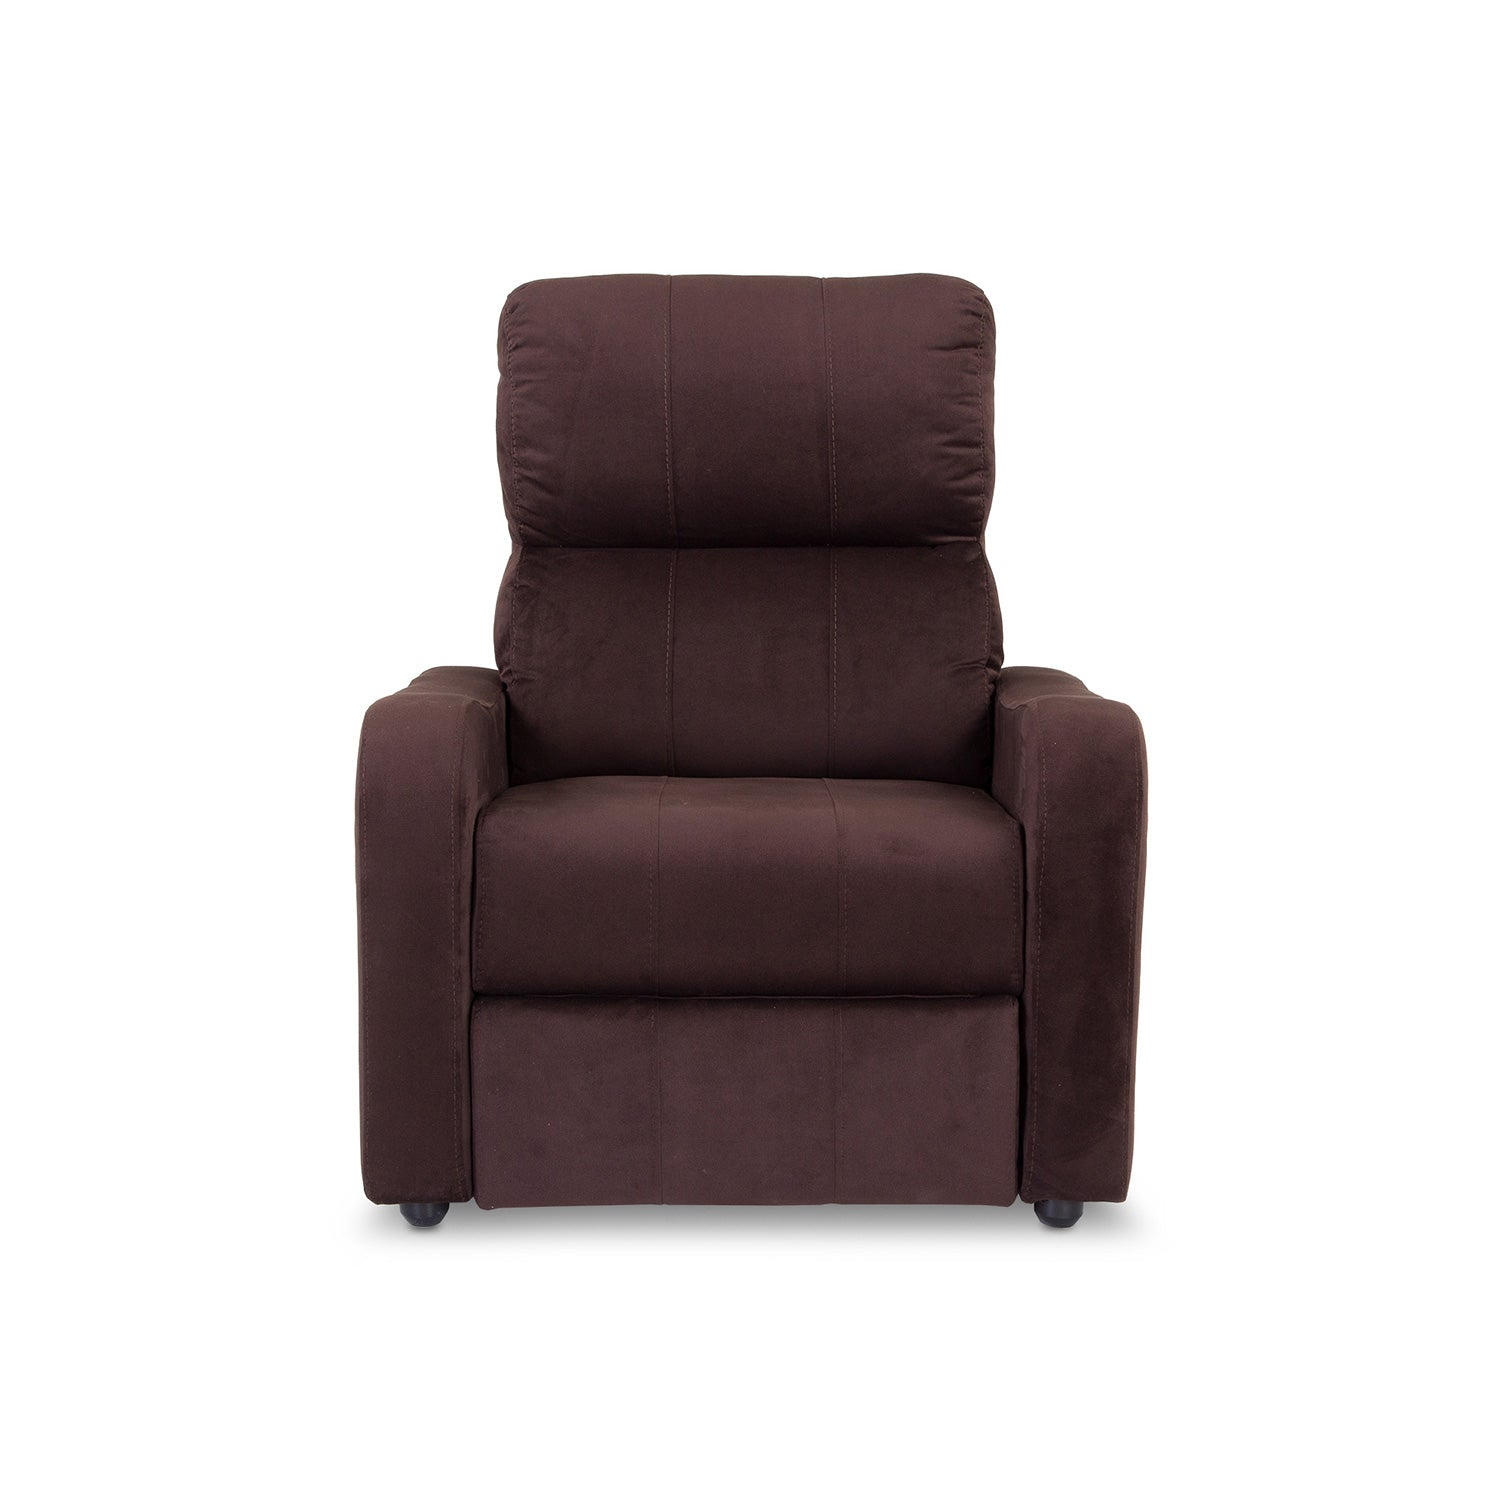 Silla Reclinable Daytona Microfibra Chocolate